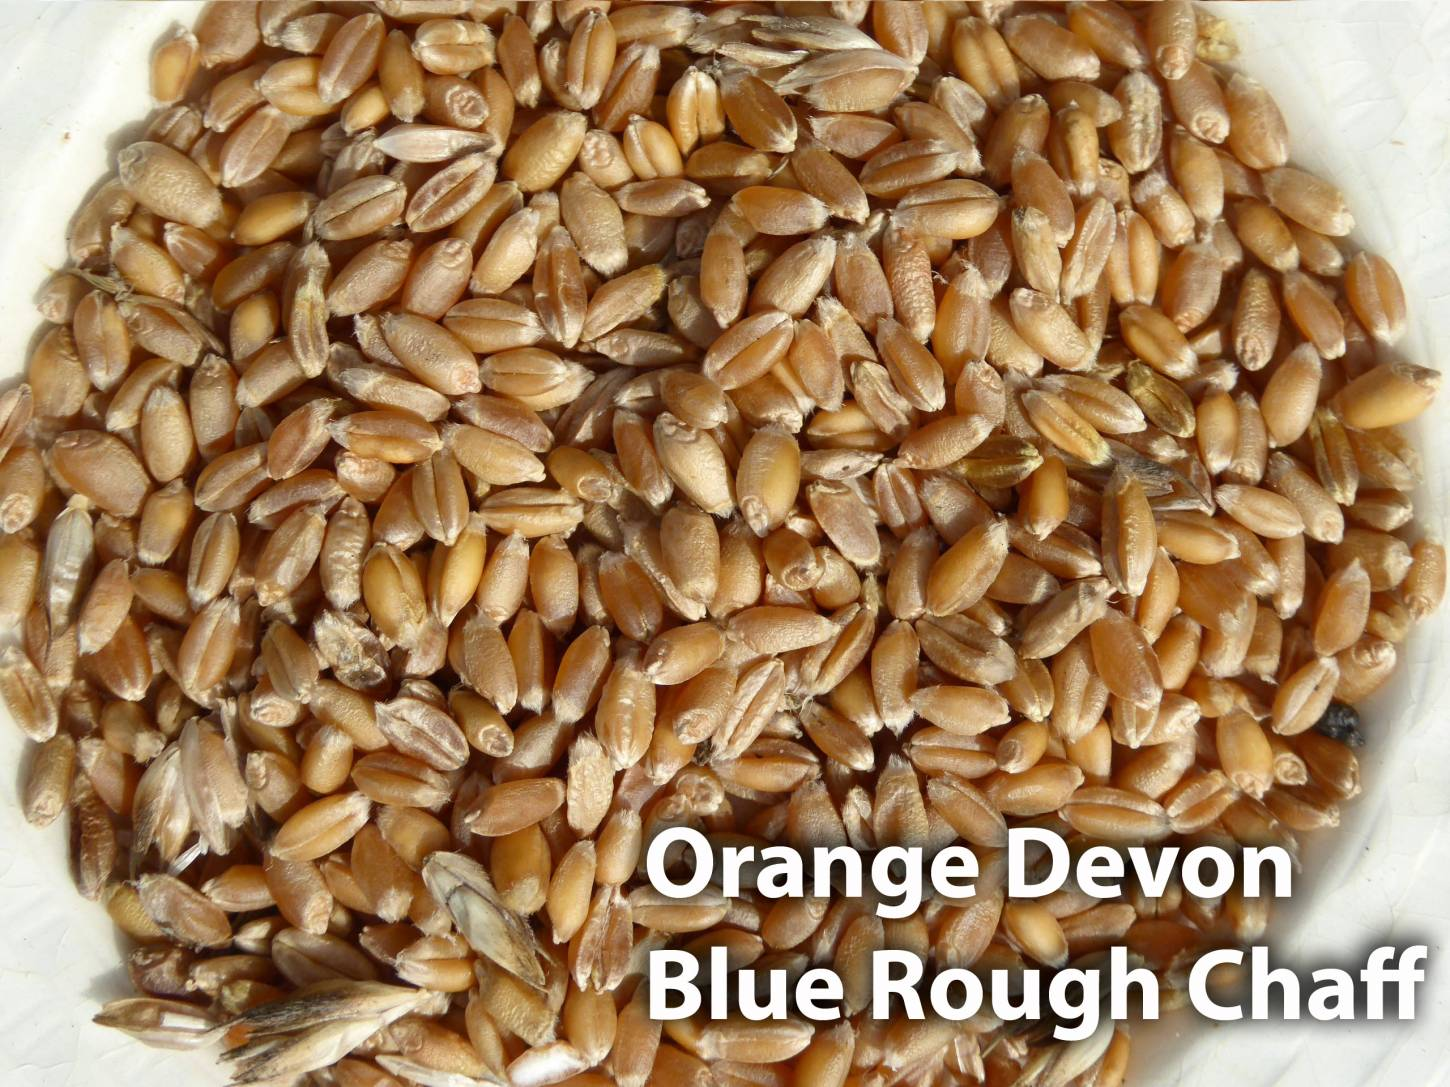 grain samples from allotment, <a href='http://www.wheat-gateway.org.uk/hub.php?ID=45' target='_blank'>Orange Devon Blue Rough Chaff</a>